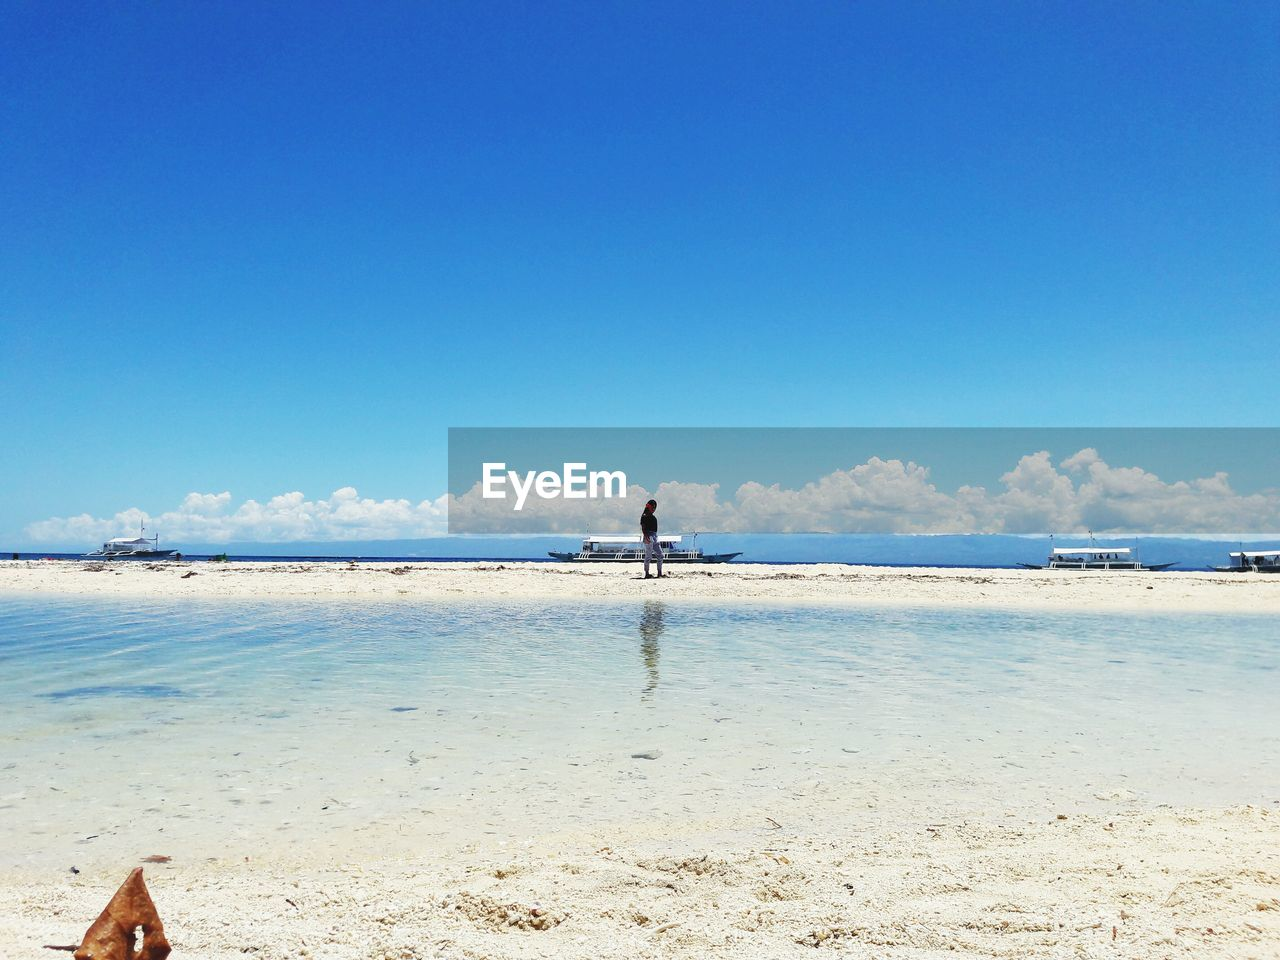 sky, sea, land, water, beach, beauty in nature, one person, scenics - nature, tranquility, nature, lifestyles, tranquil scene, blue, real people, leisure activity, day, copy space, horizon, idyllic, horizon over water, outdoors